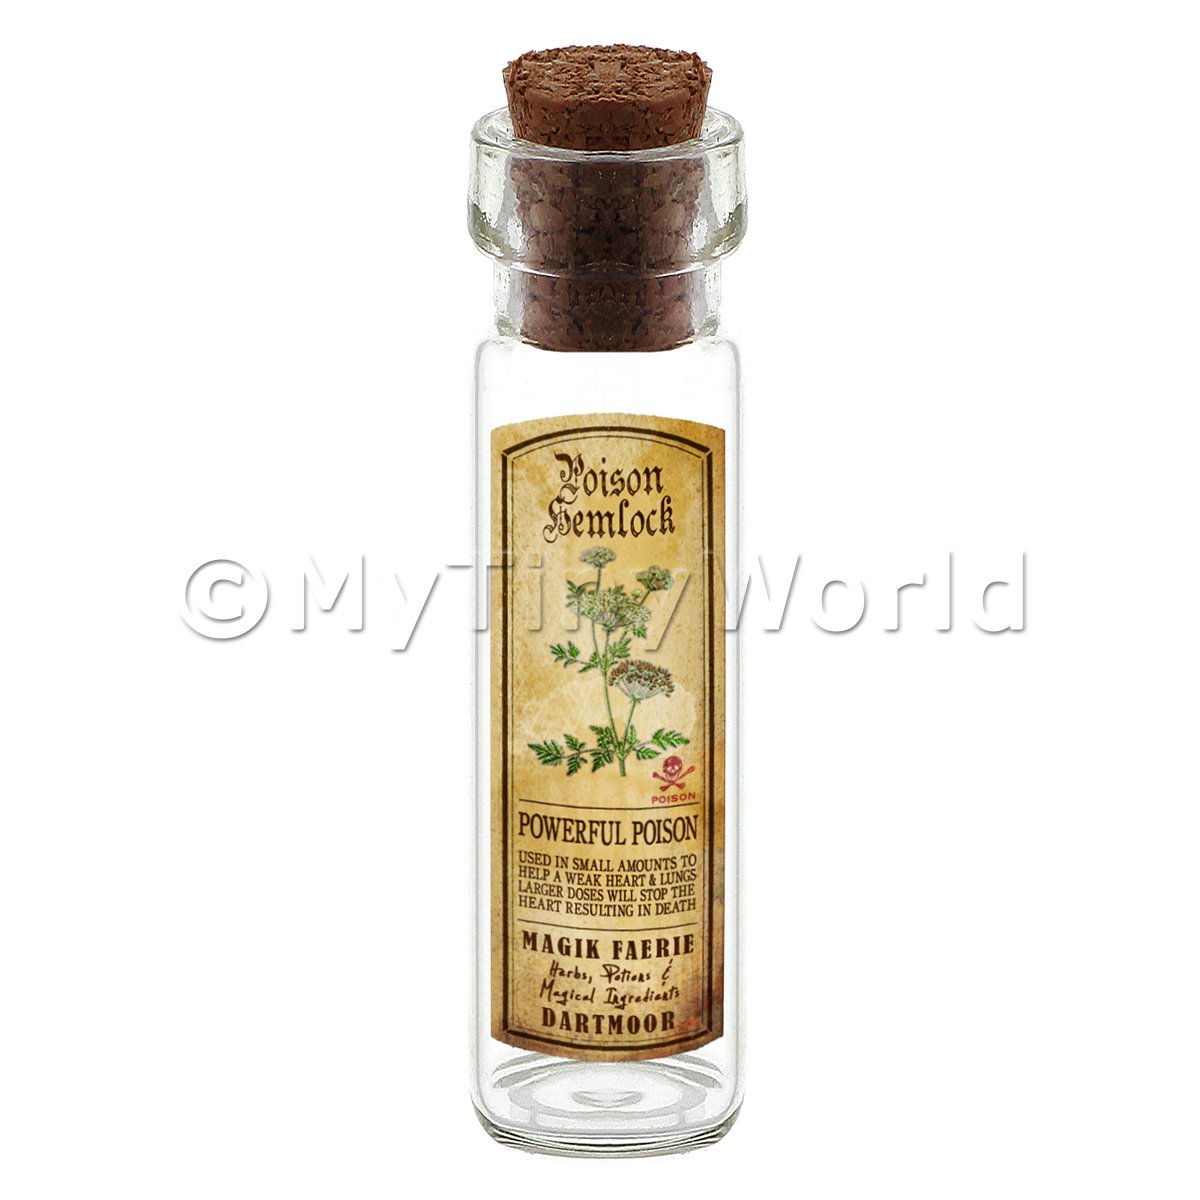 Dolls House Apothecary Hemlock Herb Long Colour Label And Bottle